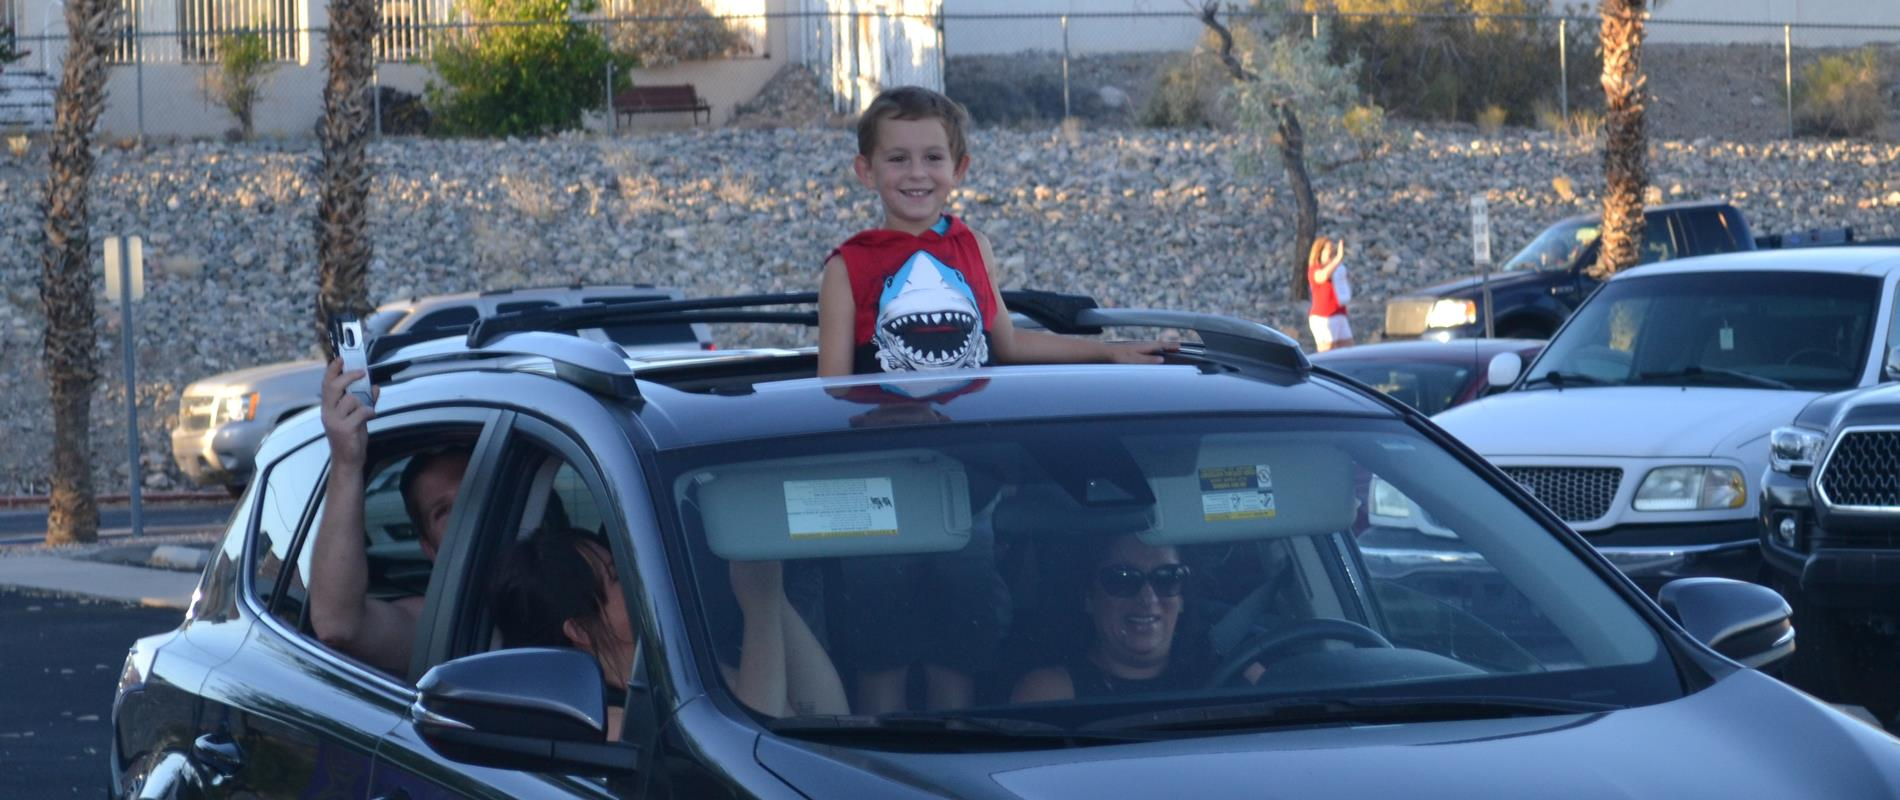 picture of boy standing through car sunroof at kindergarten graduation drive-thru